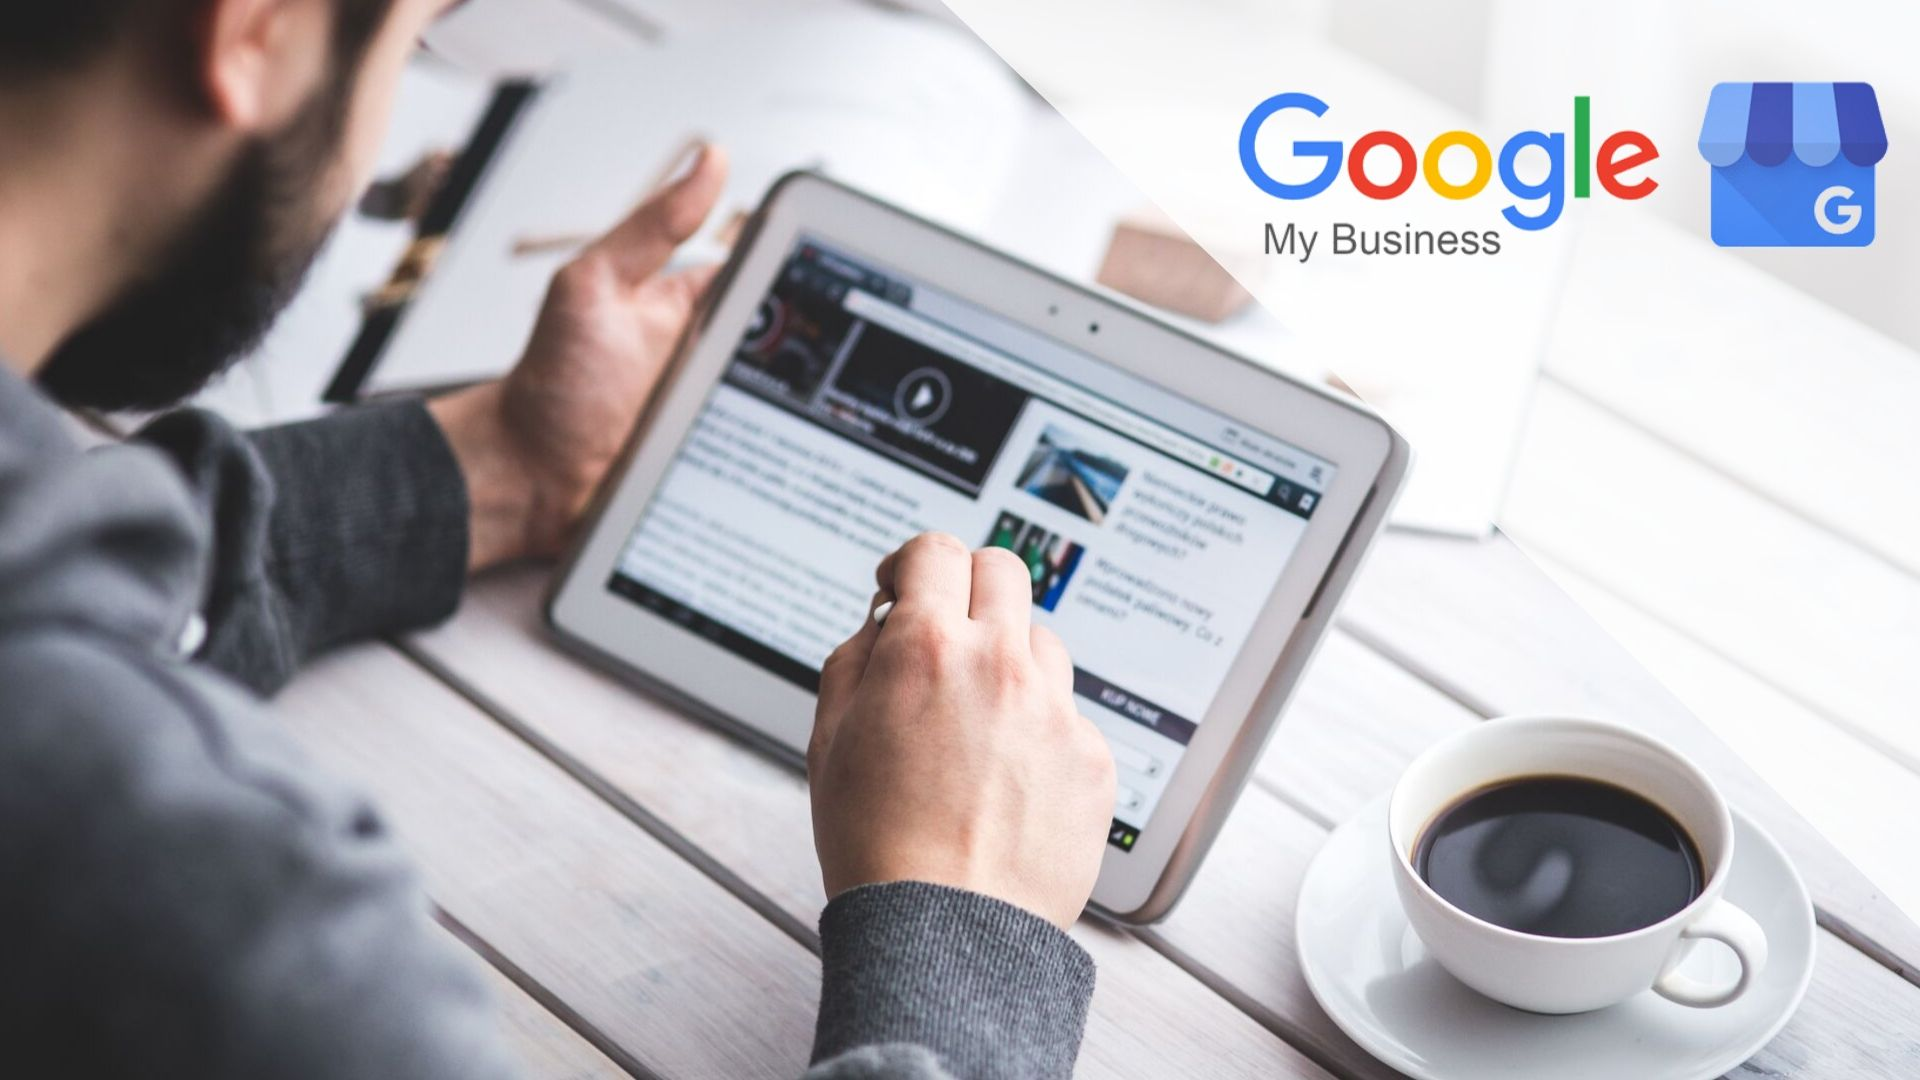 Cambios recientes en Google My Business